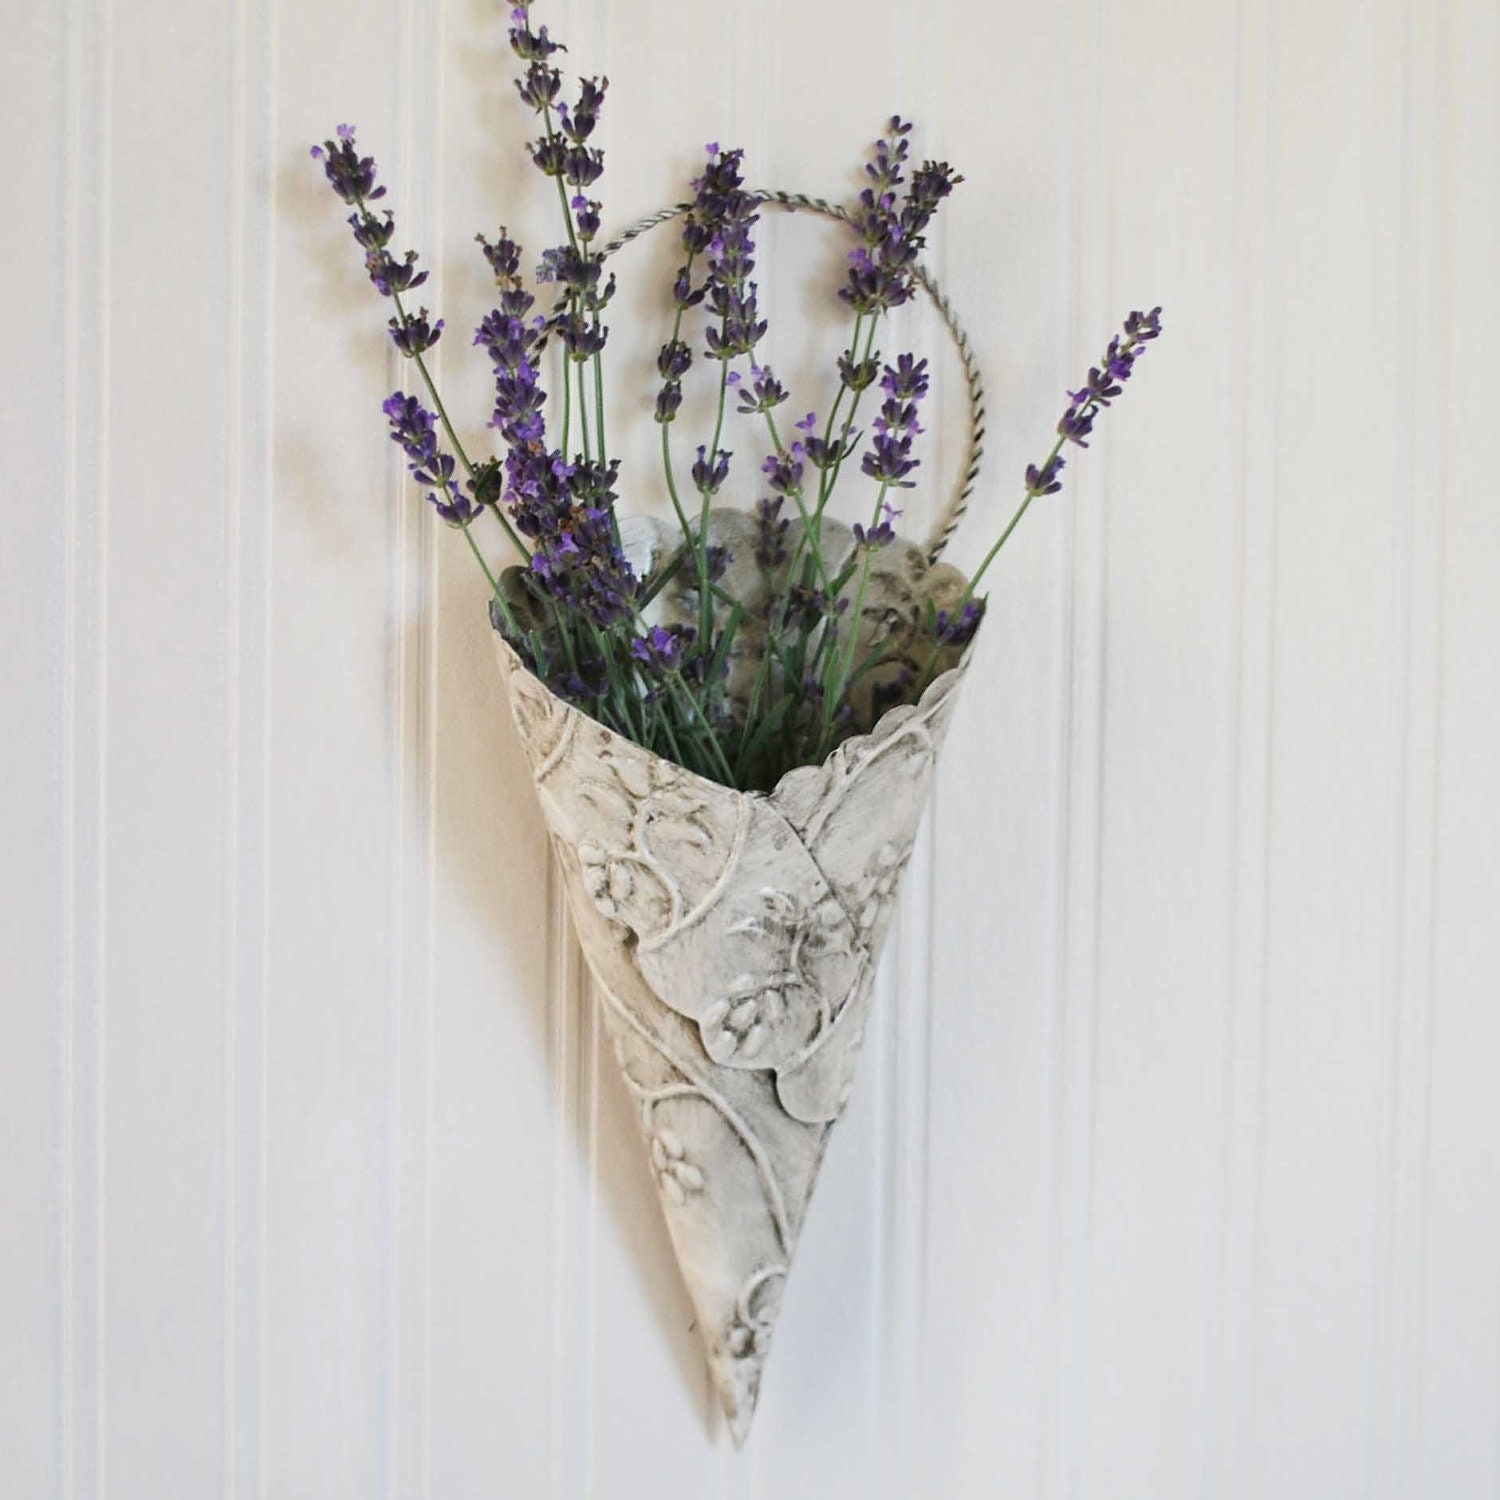 Items Similar To Flower Cone, Wall Vase, Antique White